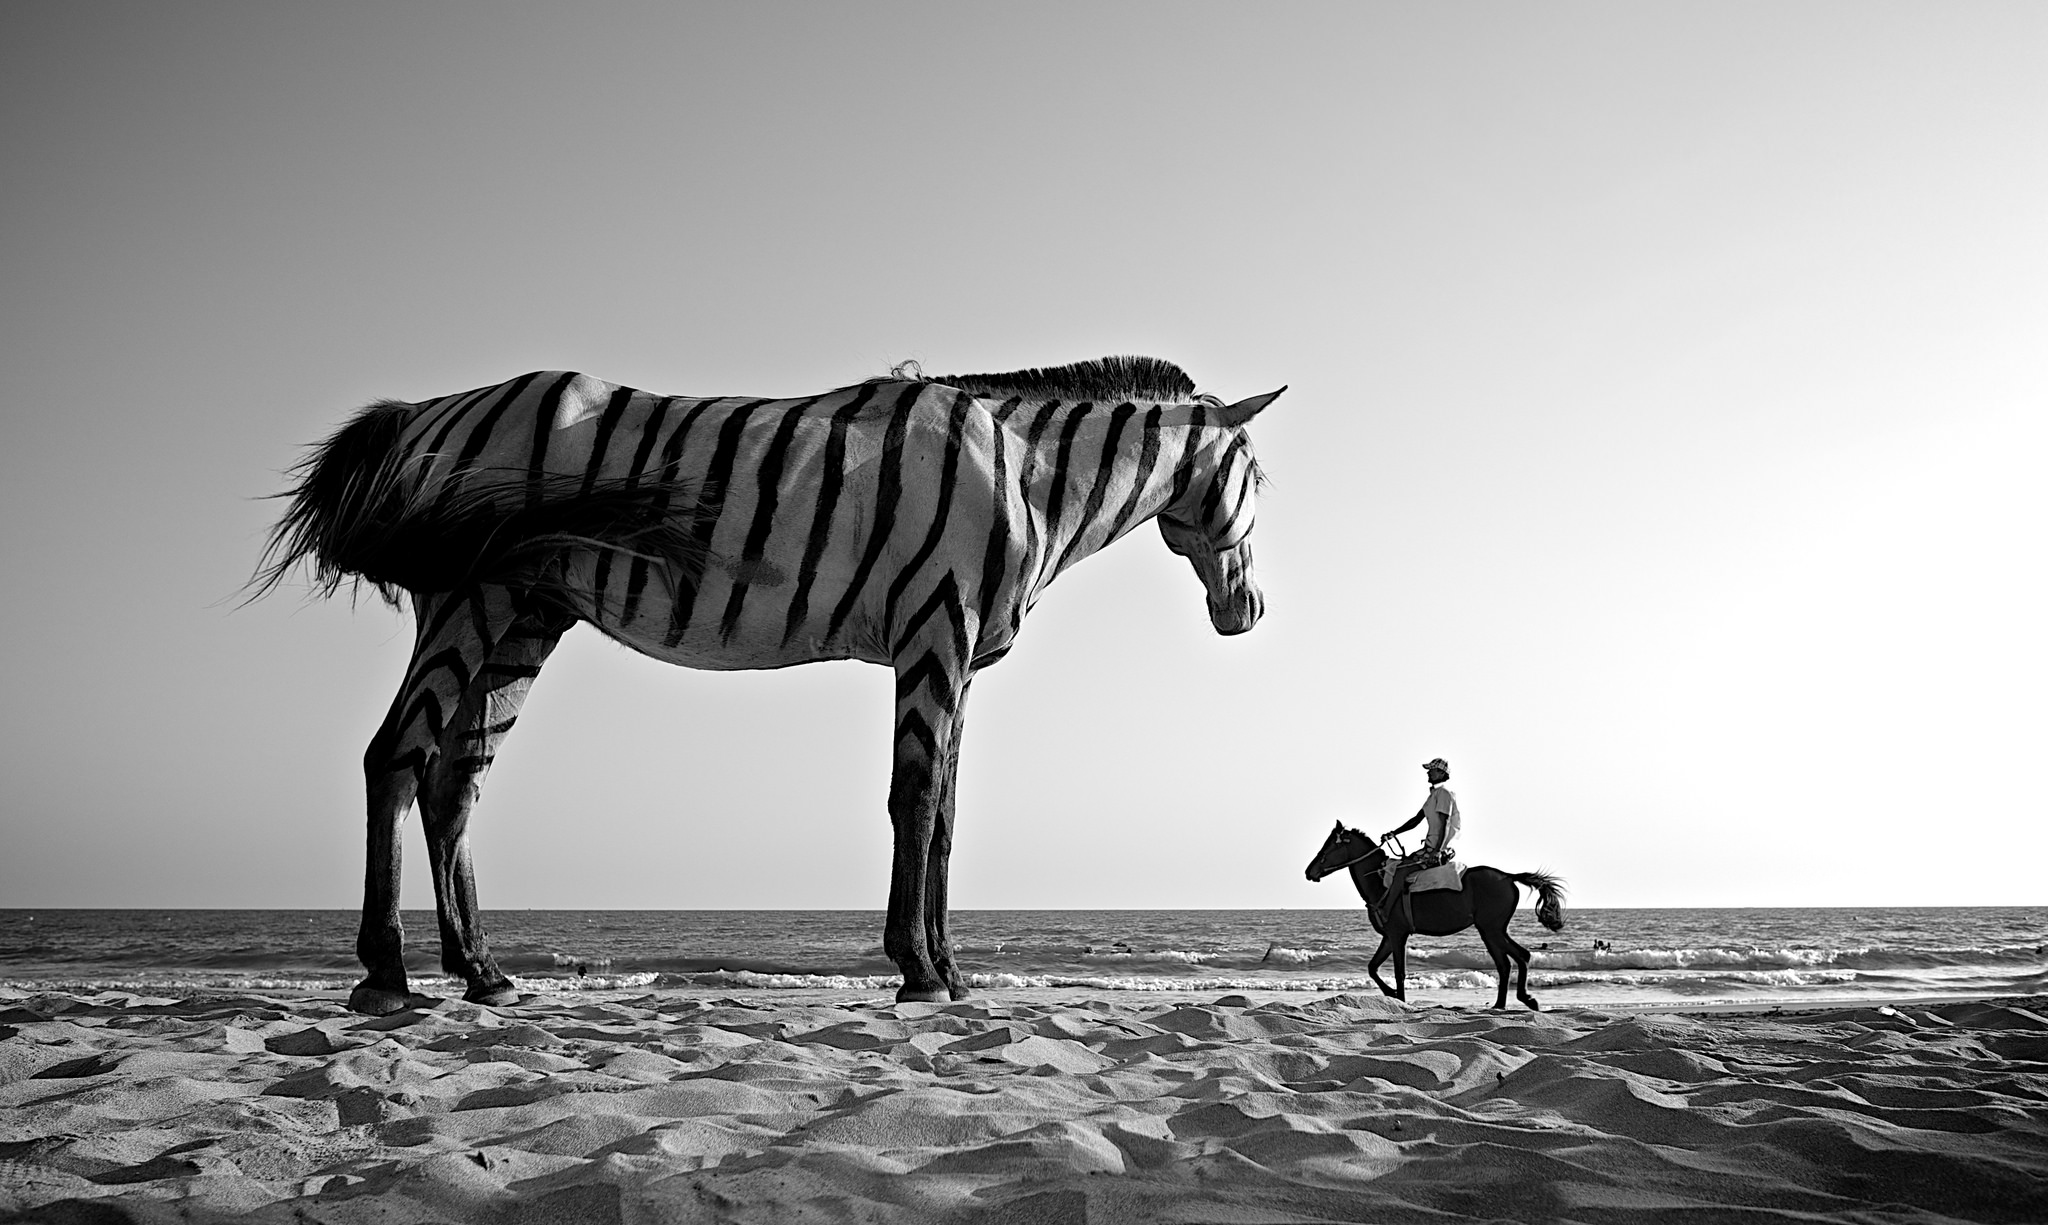 Surreal photograph of a giant zebra towering over a man riding a horse